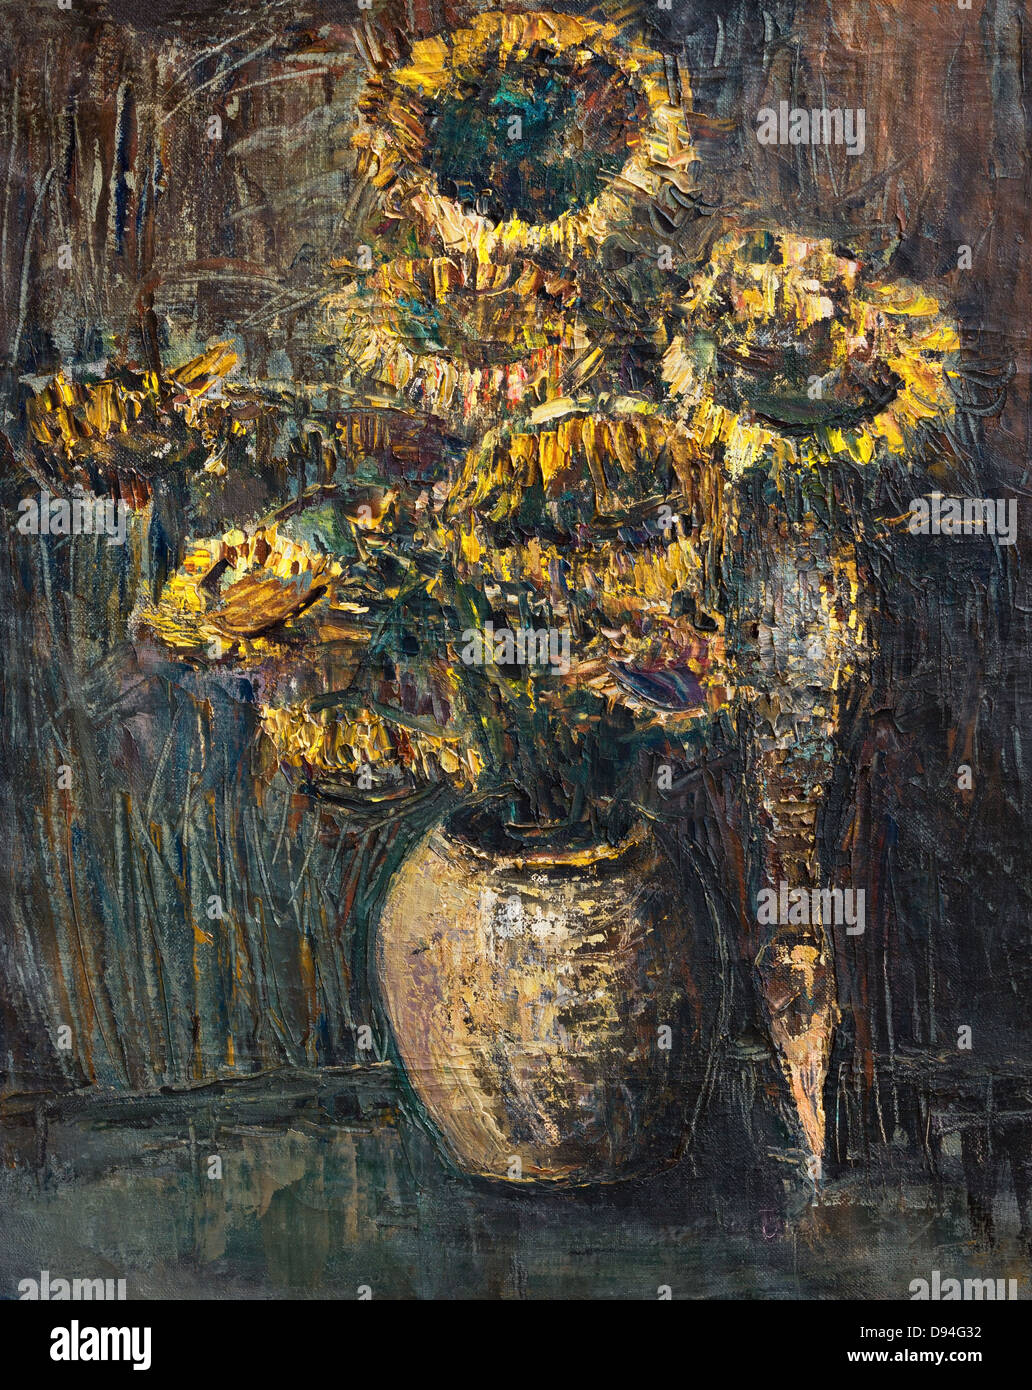 An oil painting on canvas of withered colorful sunflowers bouquet over a dark gray brown background. - Stock Image